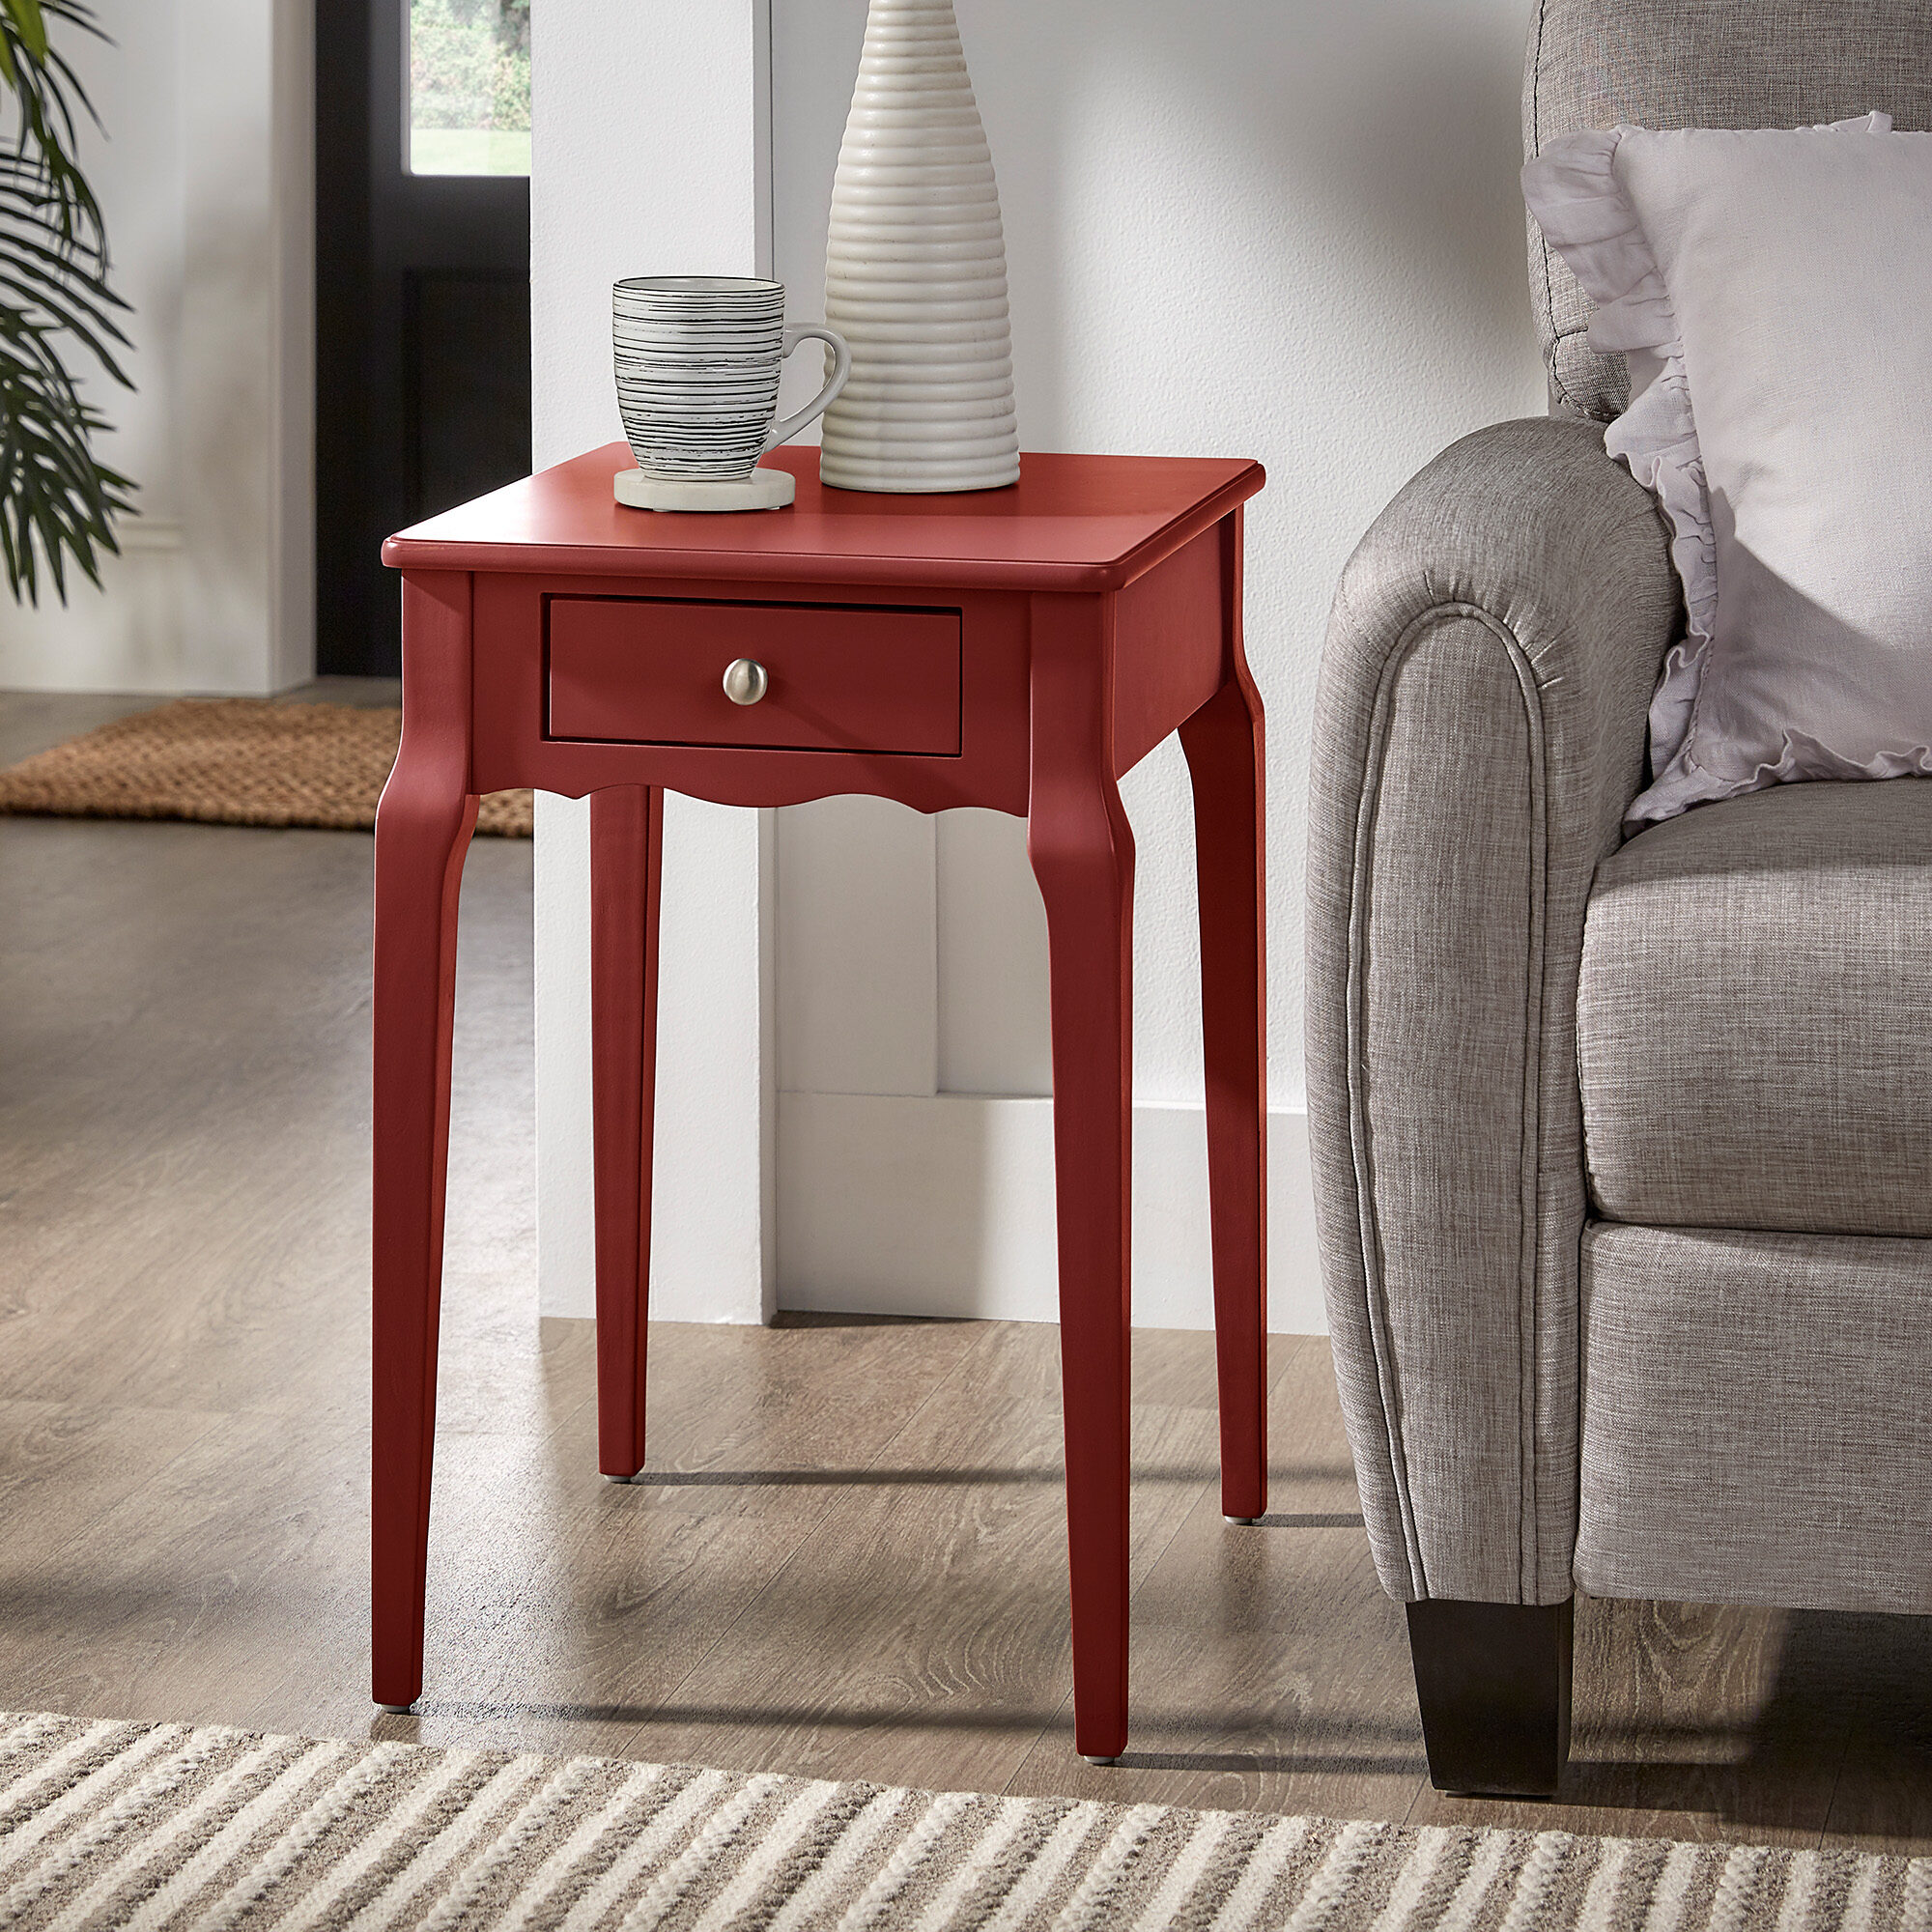 We used our samba red end table for this red home décor idea. This little end table has a single drawer with a silver knob drawer pull. This red piece is placed next to a grey fabric sofa and has a coffee mug sitting atop it.